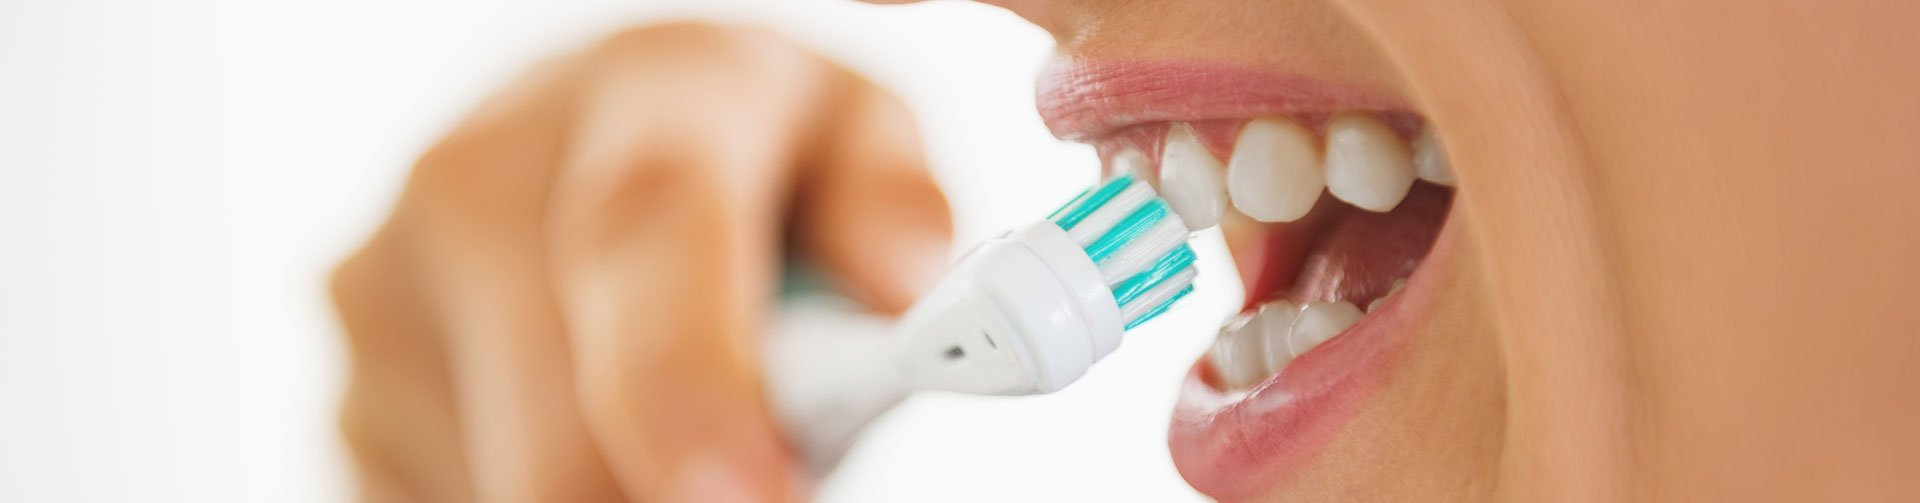 electric tooth brush brushing